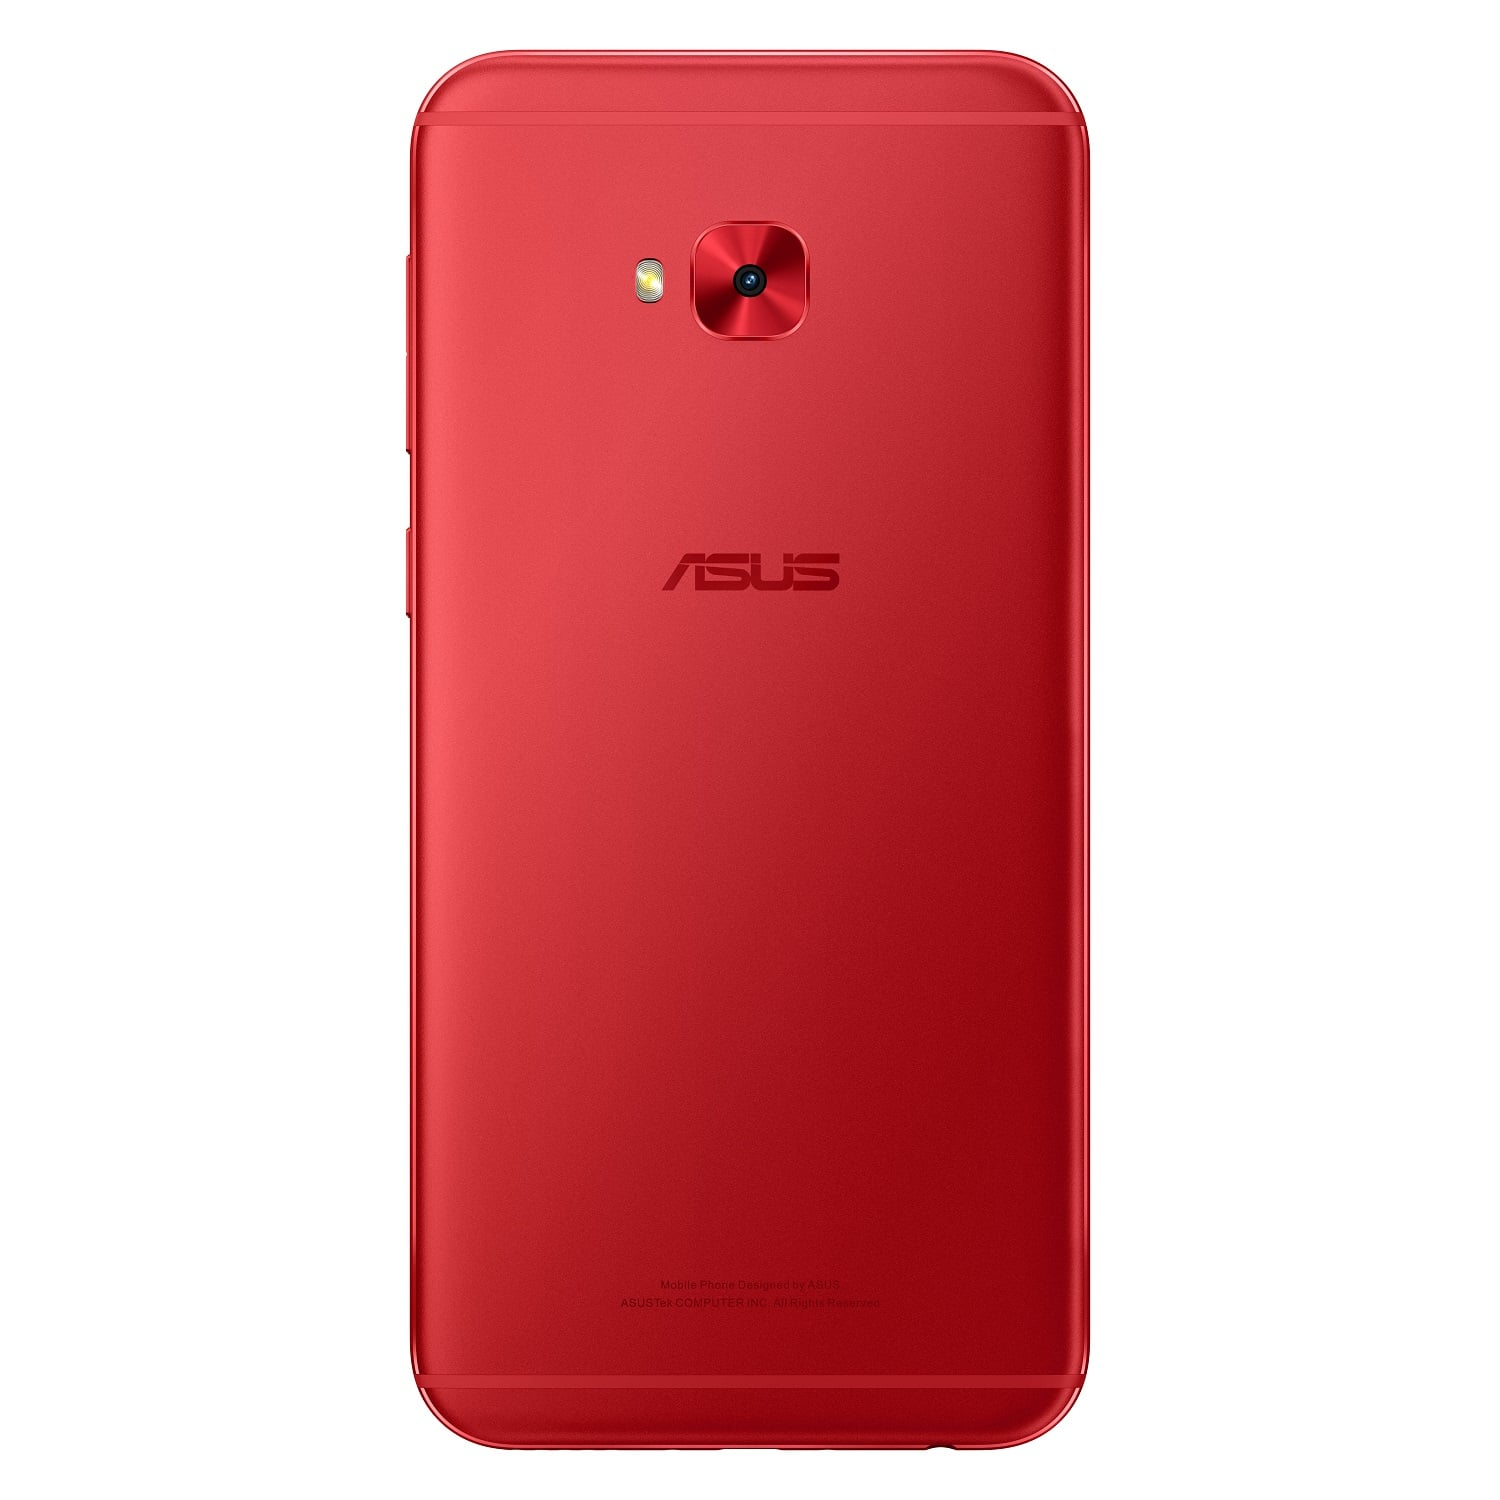 asus zenfone 4 i zenfone 4 selfie pro od jutra w polsce. Black Bedroom Furniture Sets. Home Design Ideas